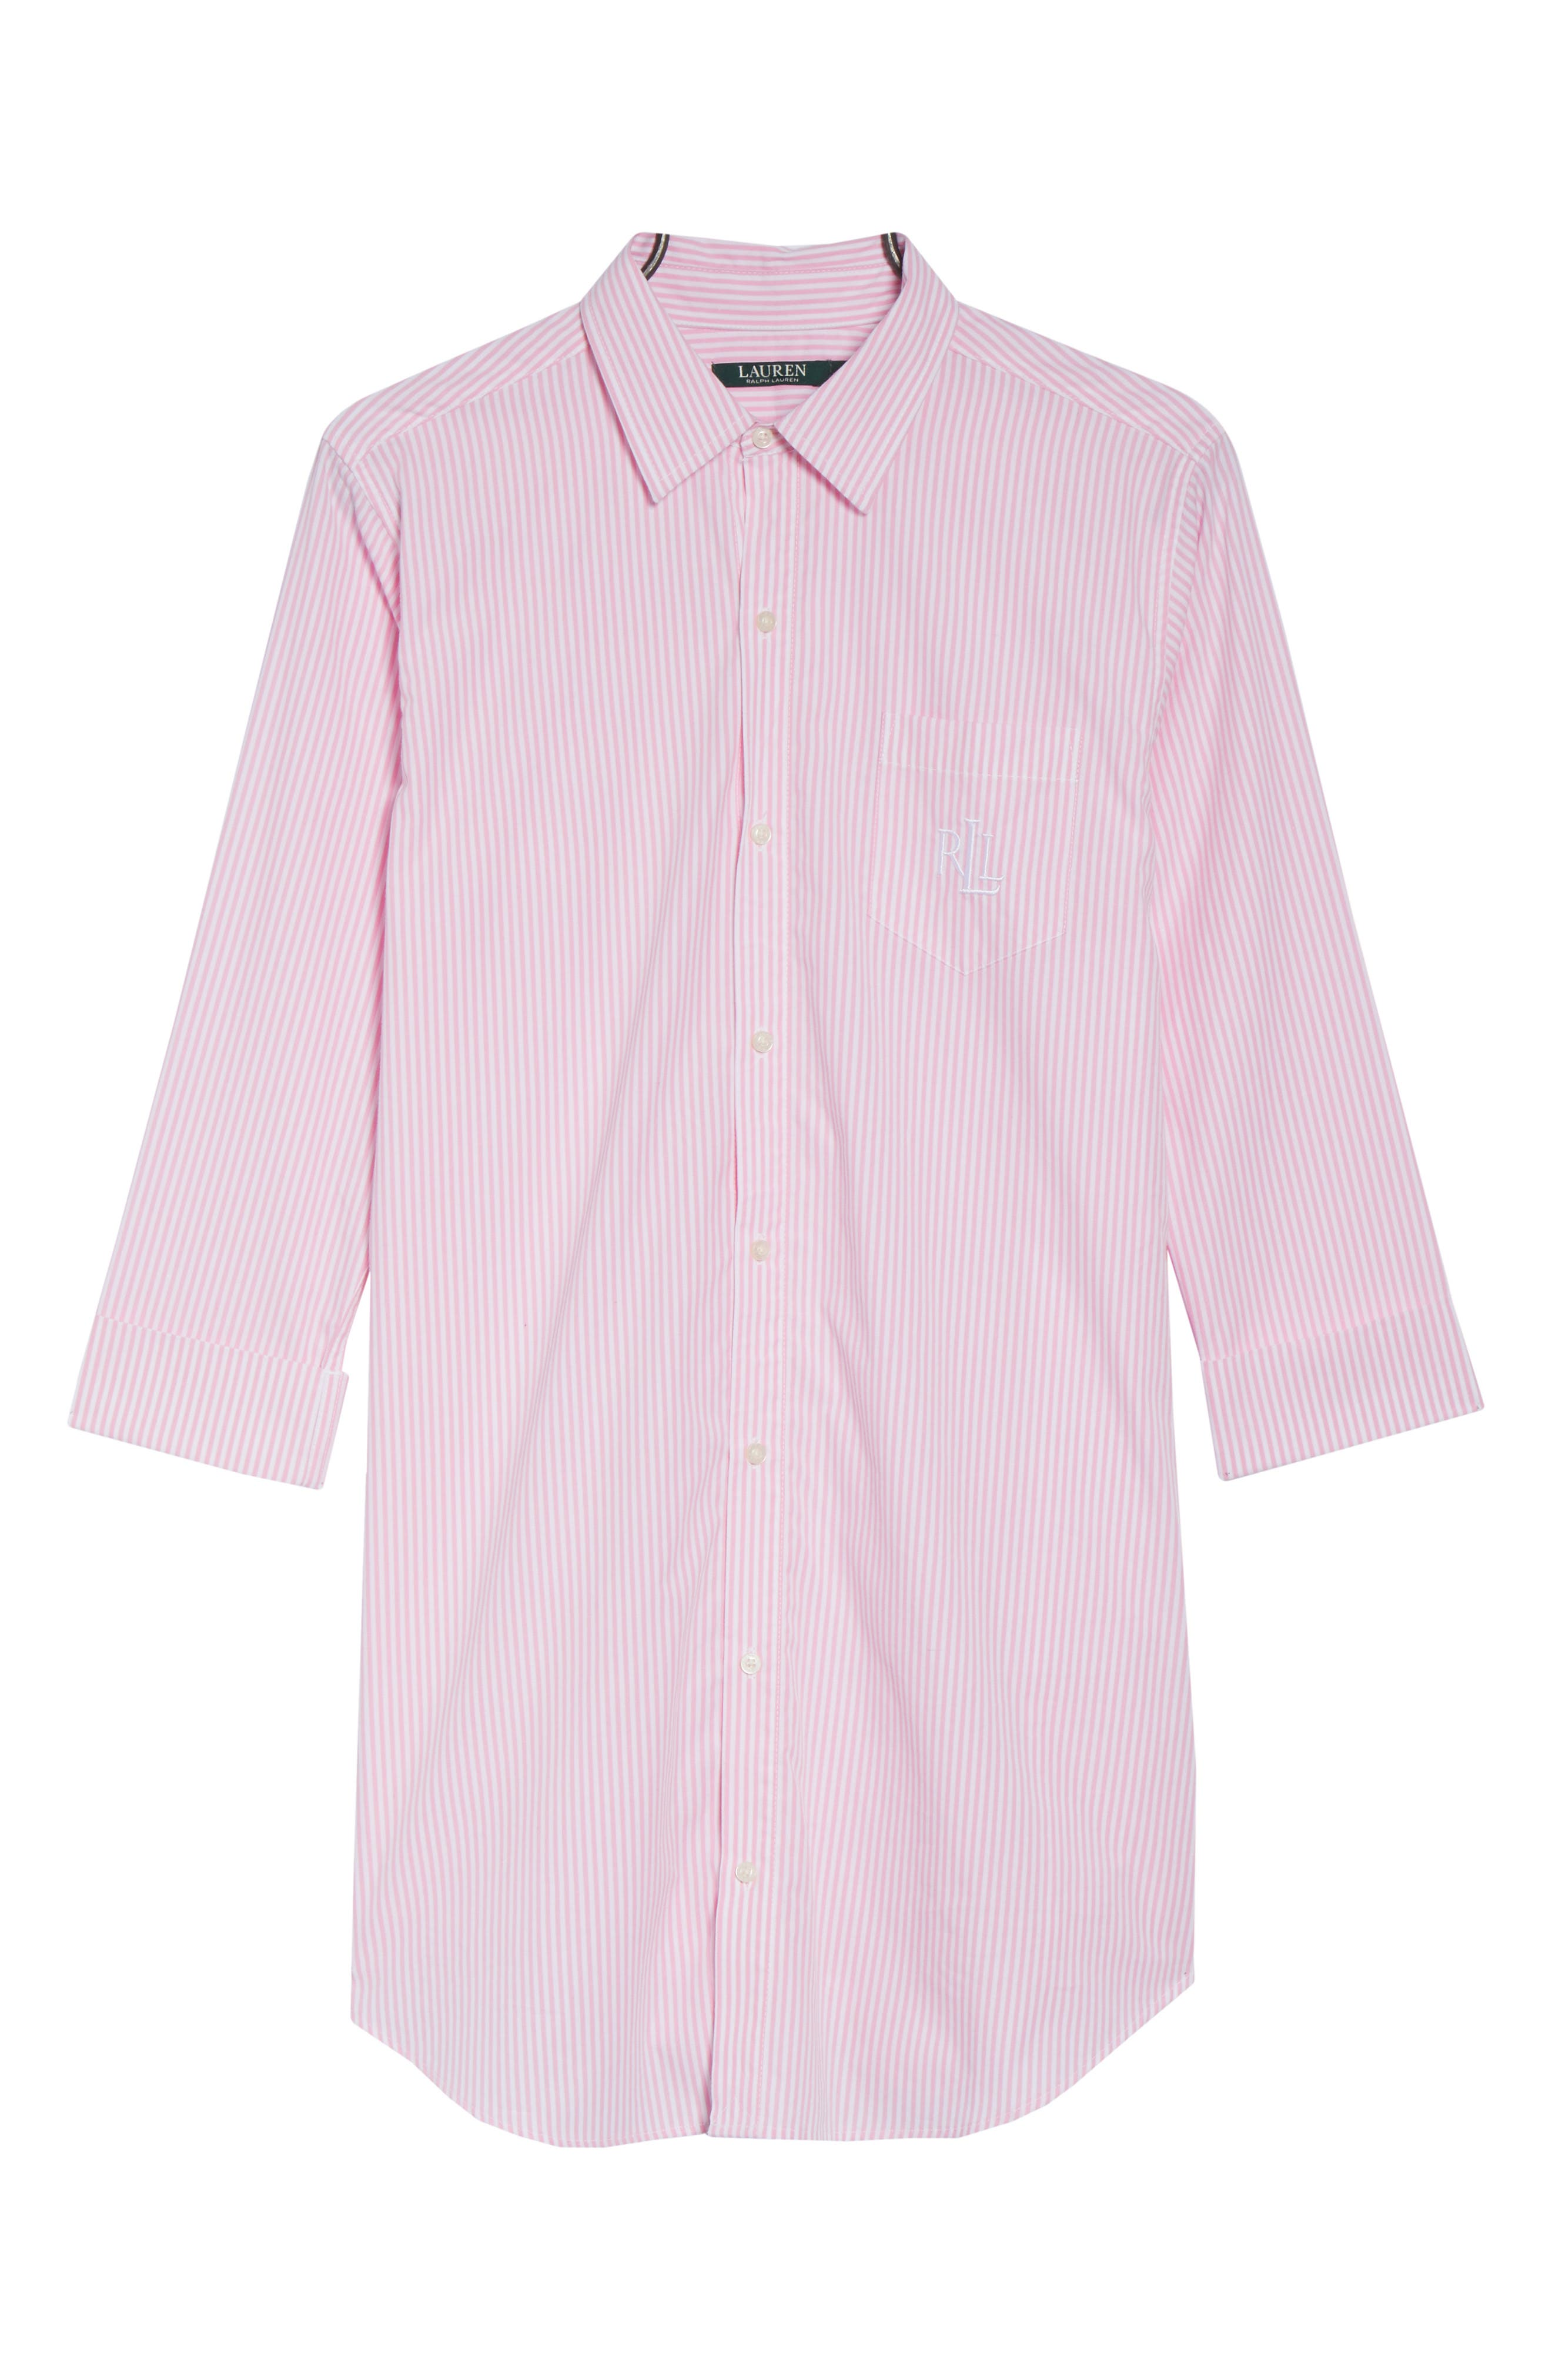 Cotton Poplin Sleep Shirt,                             Alternate thumbnail 5, color,                             Stripe Lagoon Pink/ White